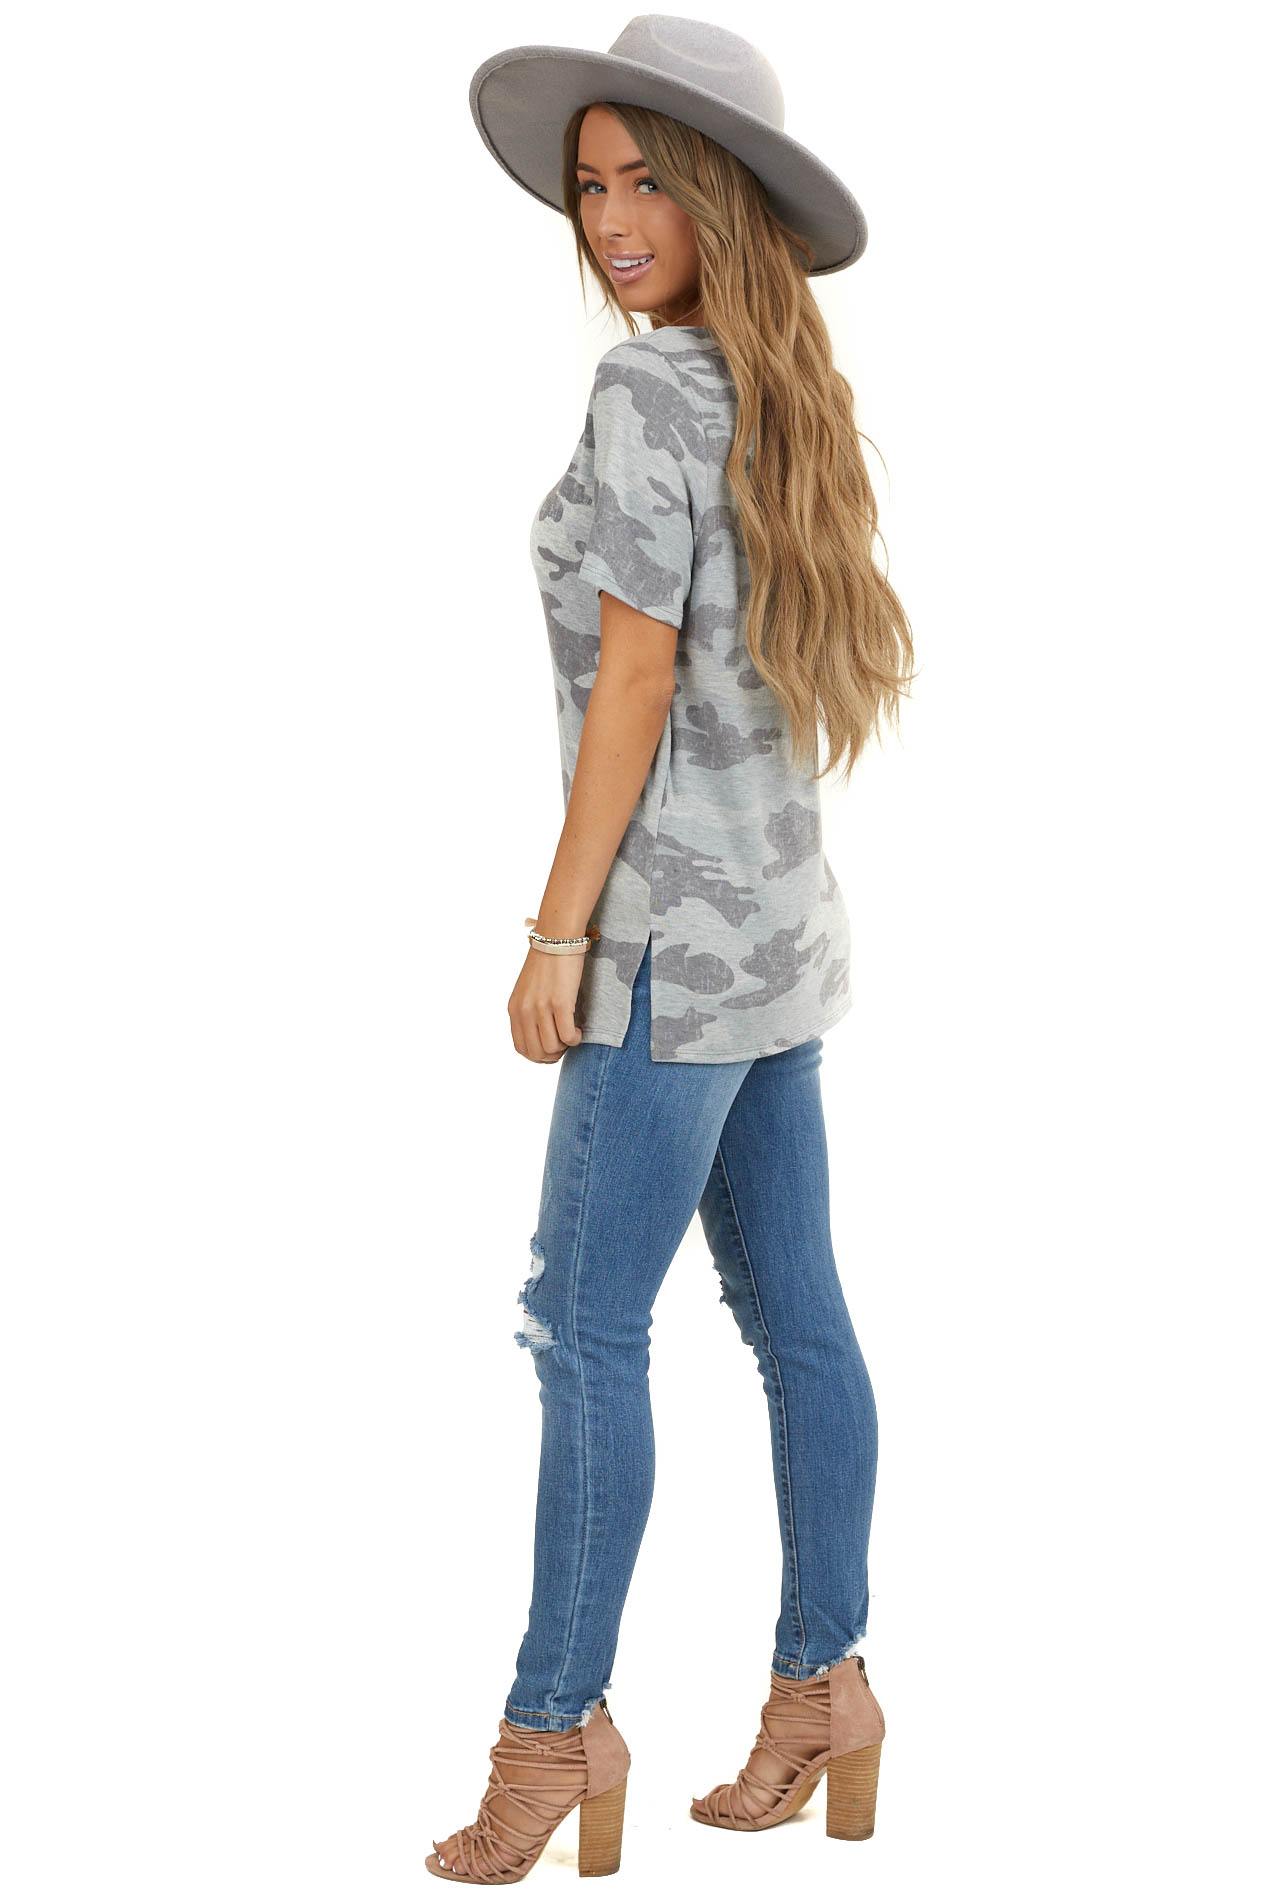 Heather Grey Camo Print Short Sleeve Top with Cutout Detail